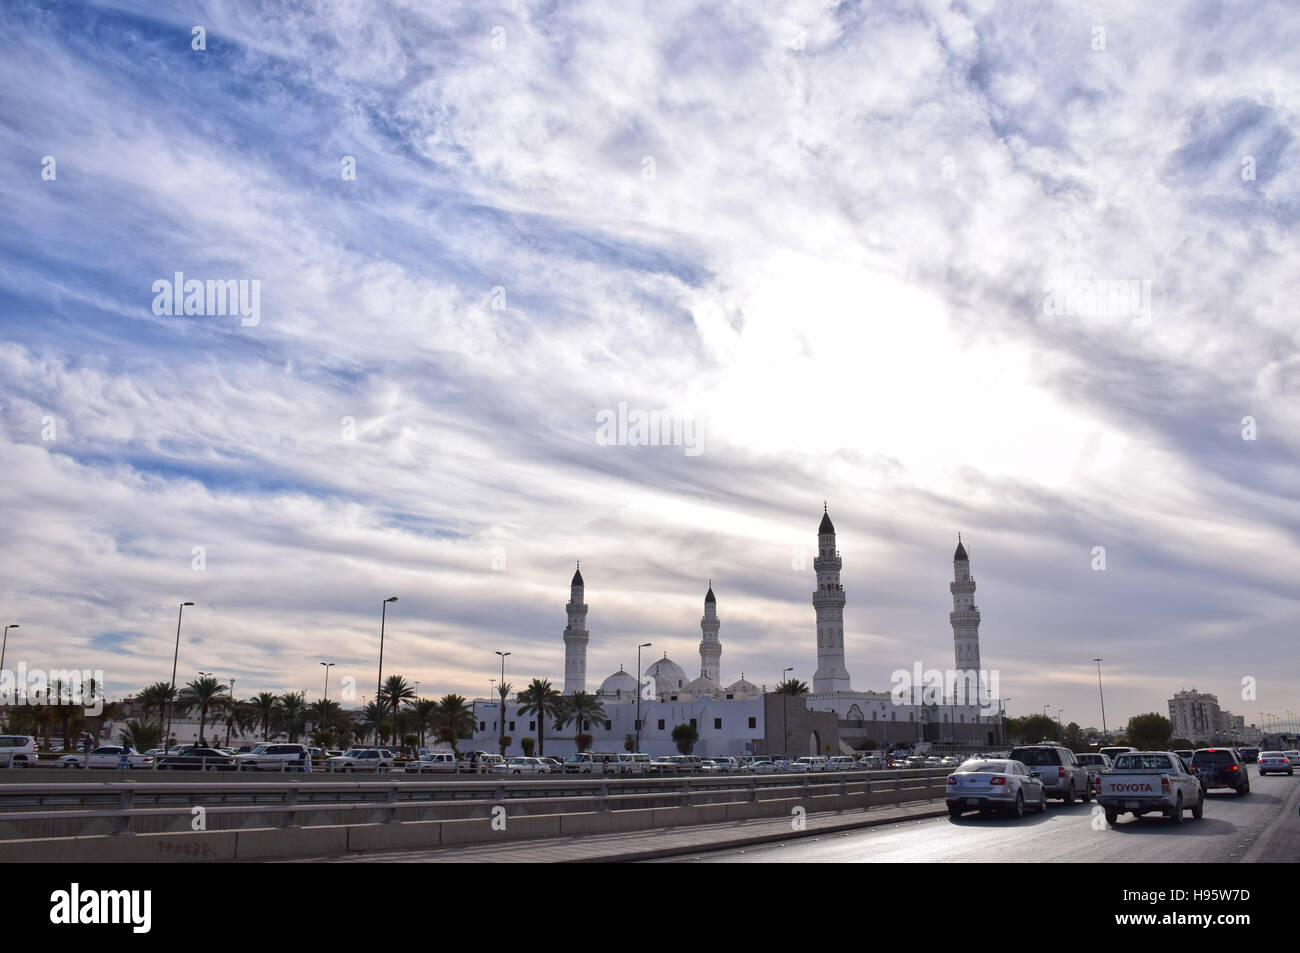 Quba Mosque from Al-Hijrah Street - Stock Image